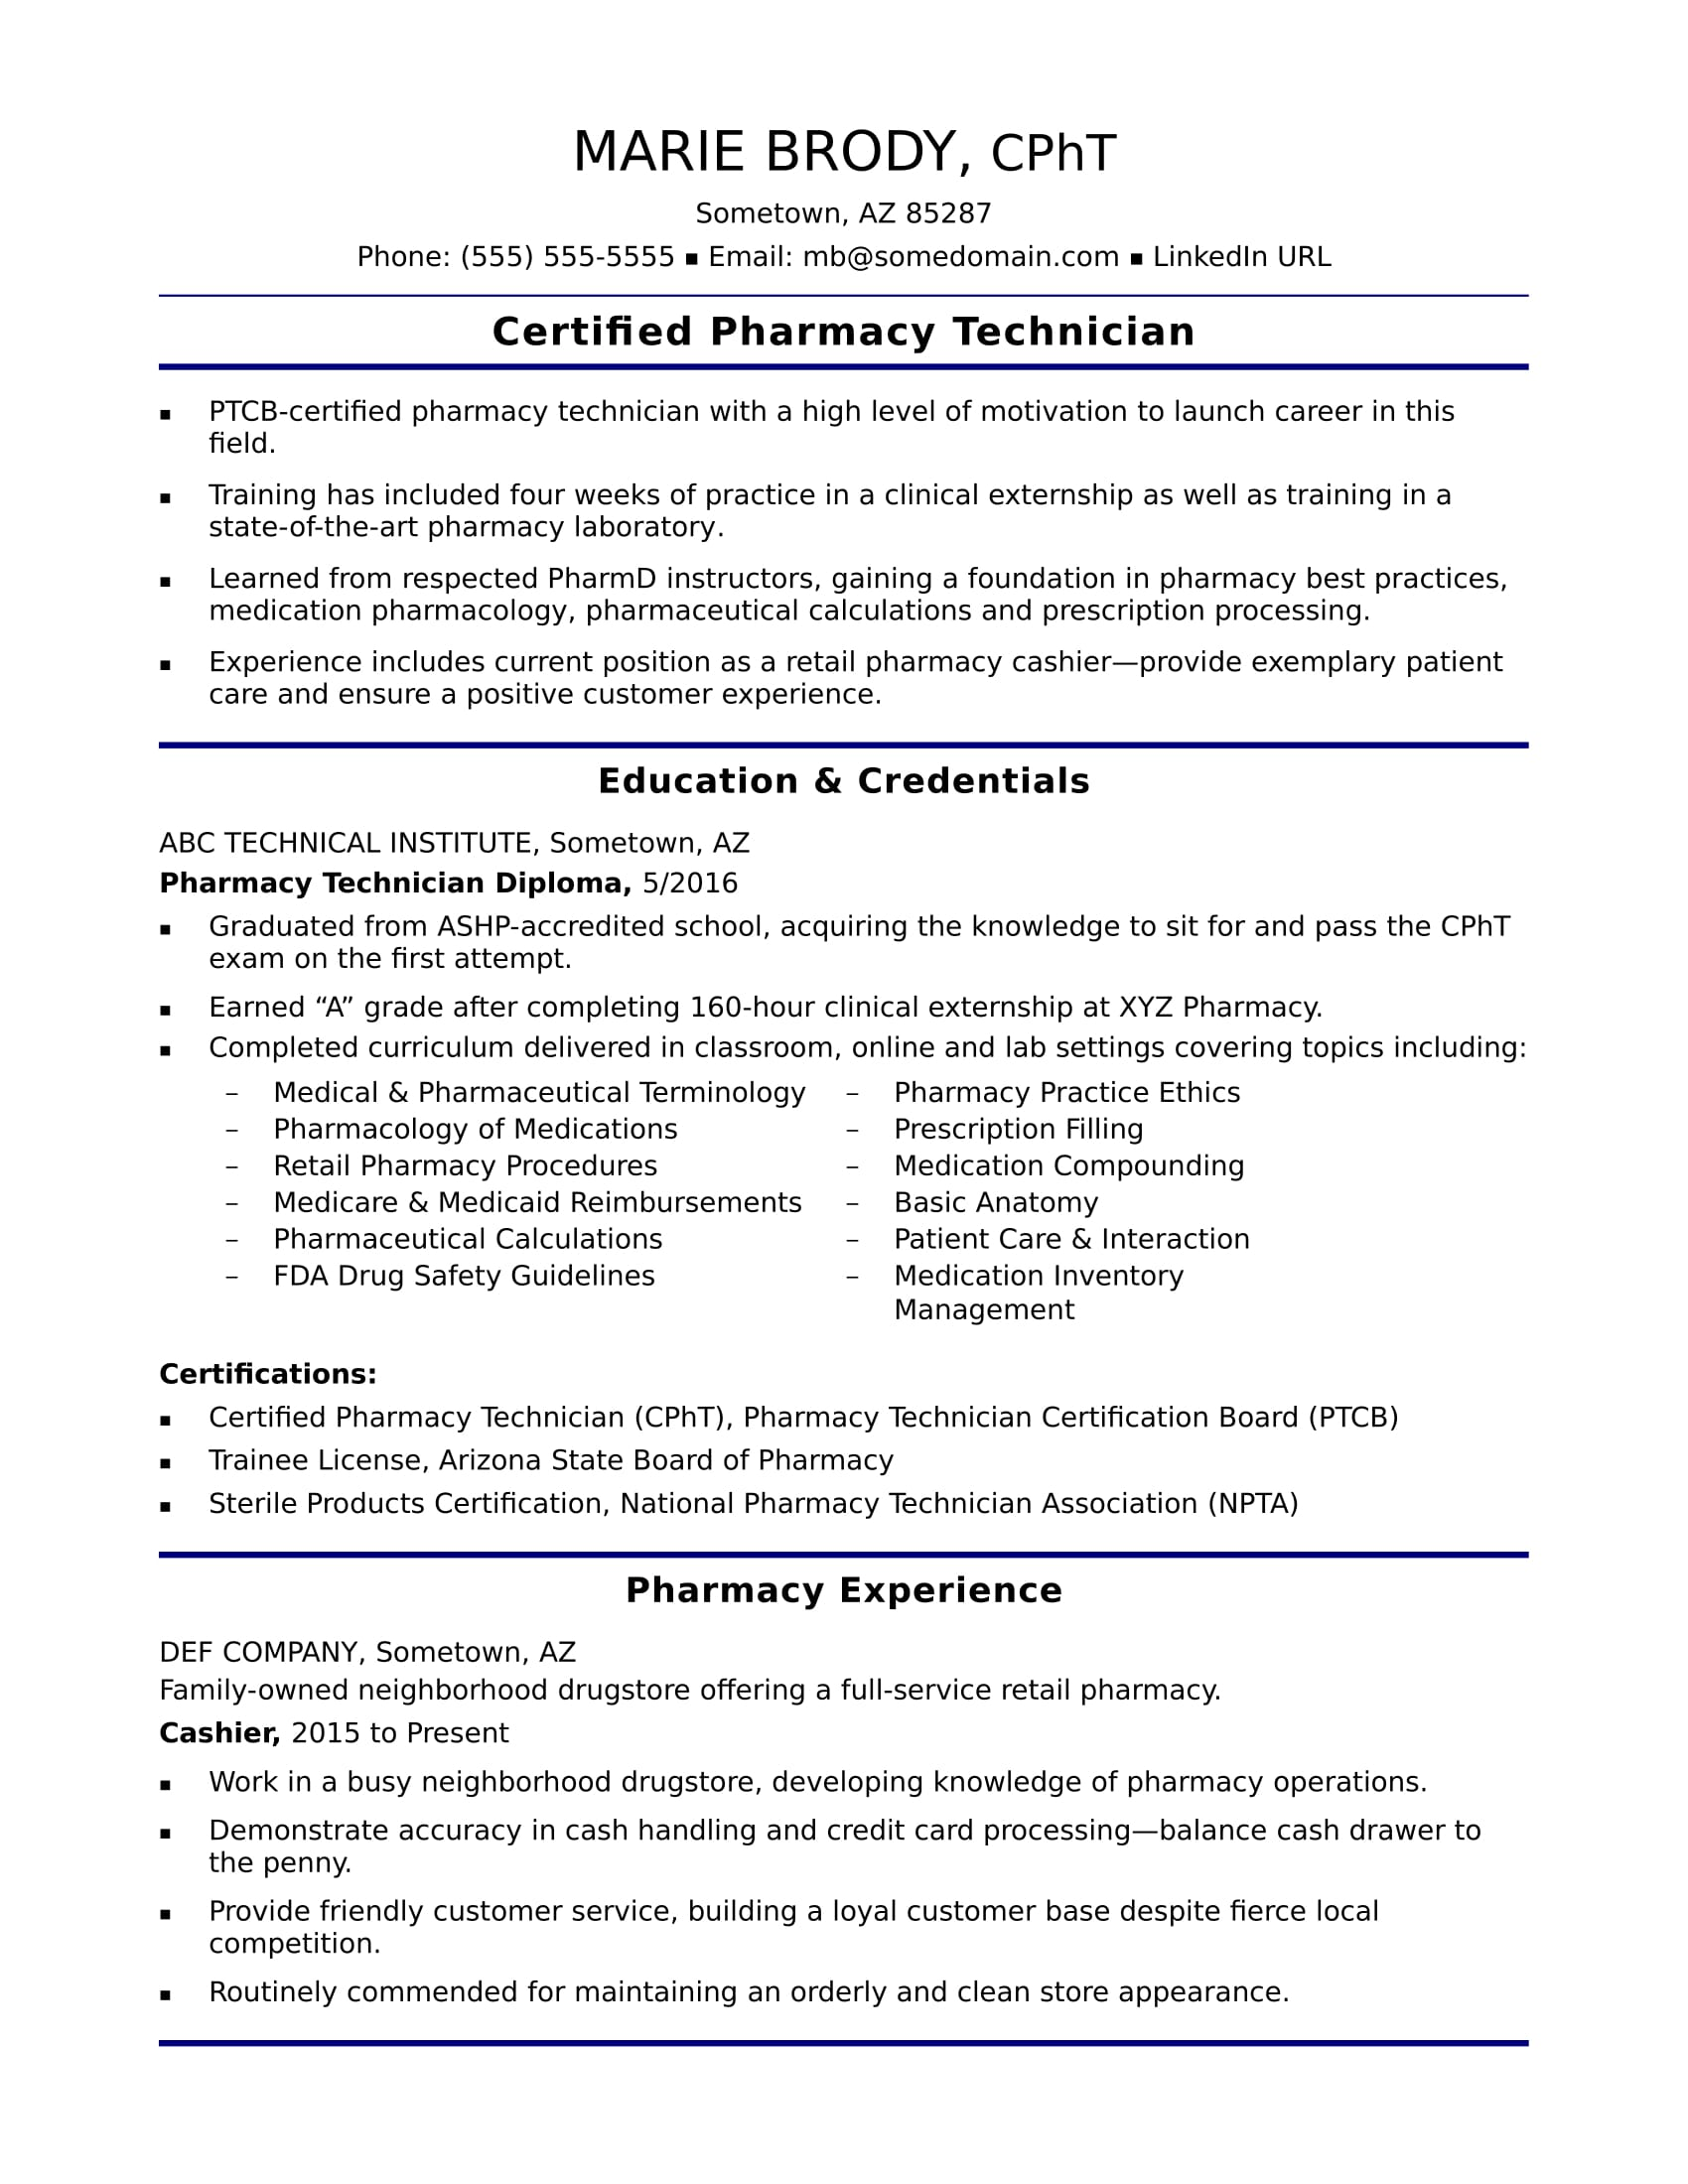 sample resume for an entry level pharmacy technician - Pharmacy Technician Resume Sample